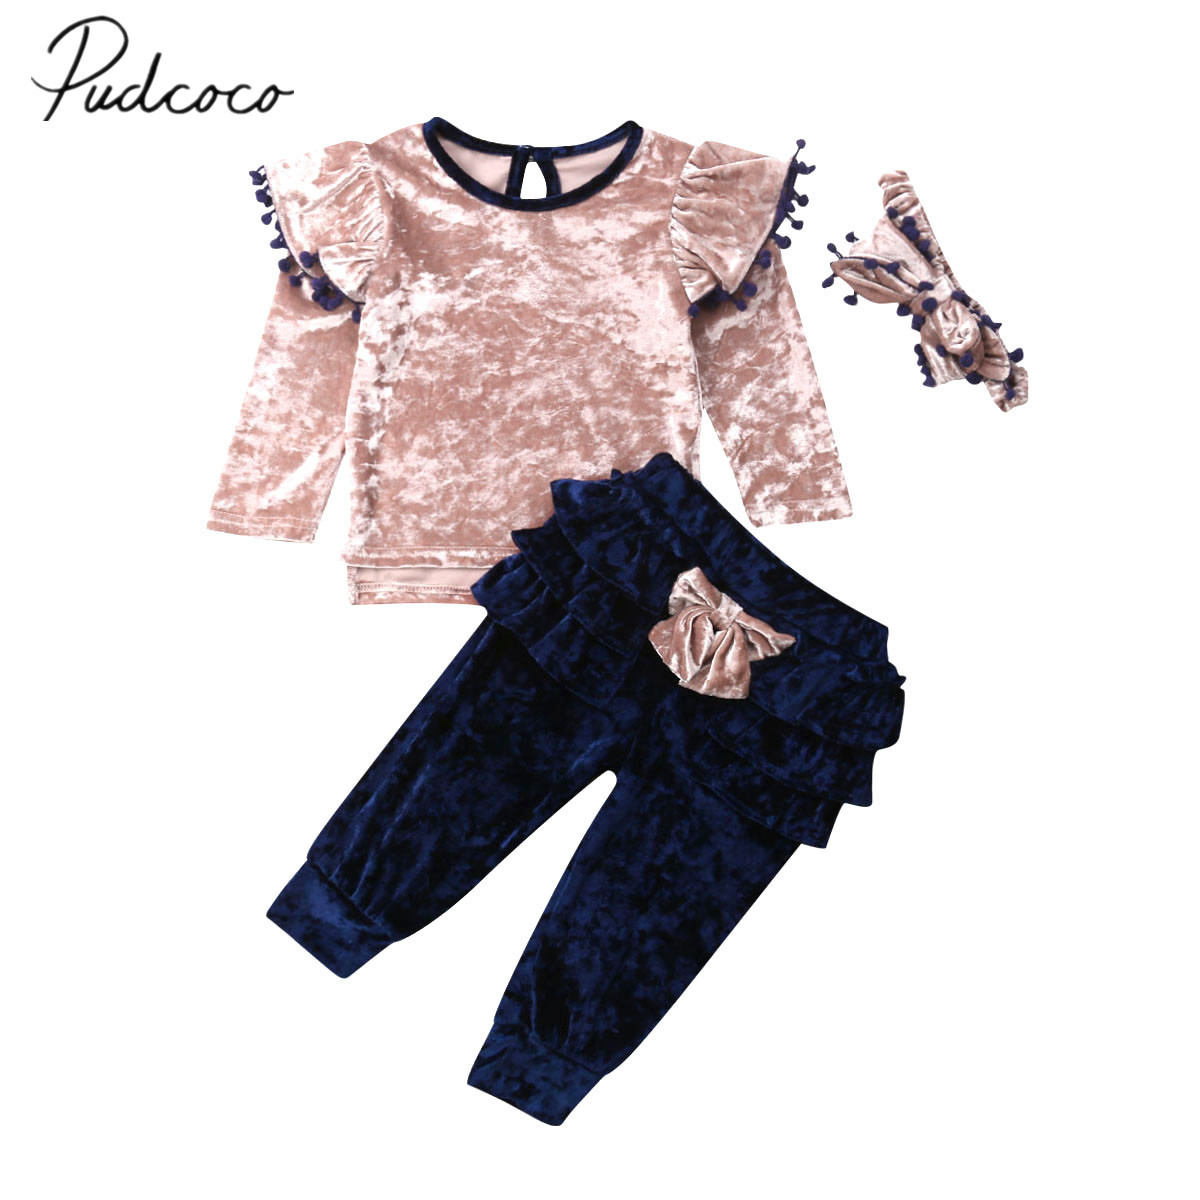 Toddler Kids Baby Girl Hooded Tops Plaid Pants Leggings 3Pcs Outfits Set Clothes